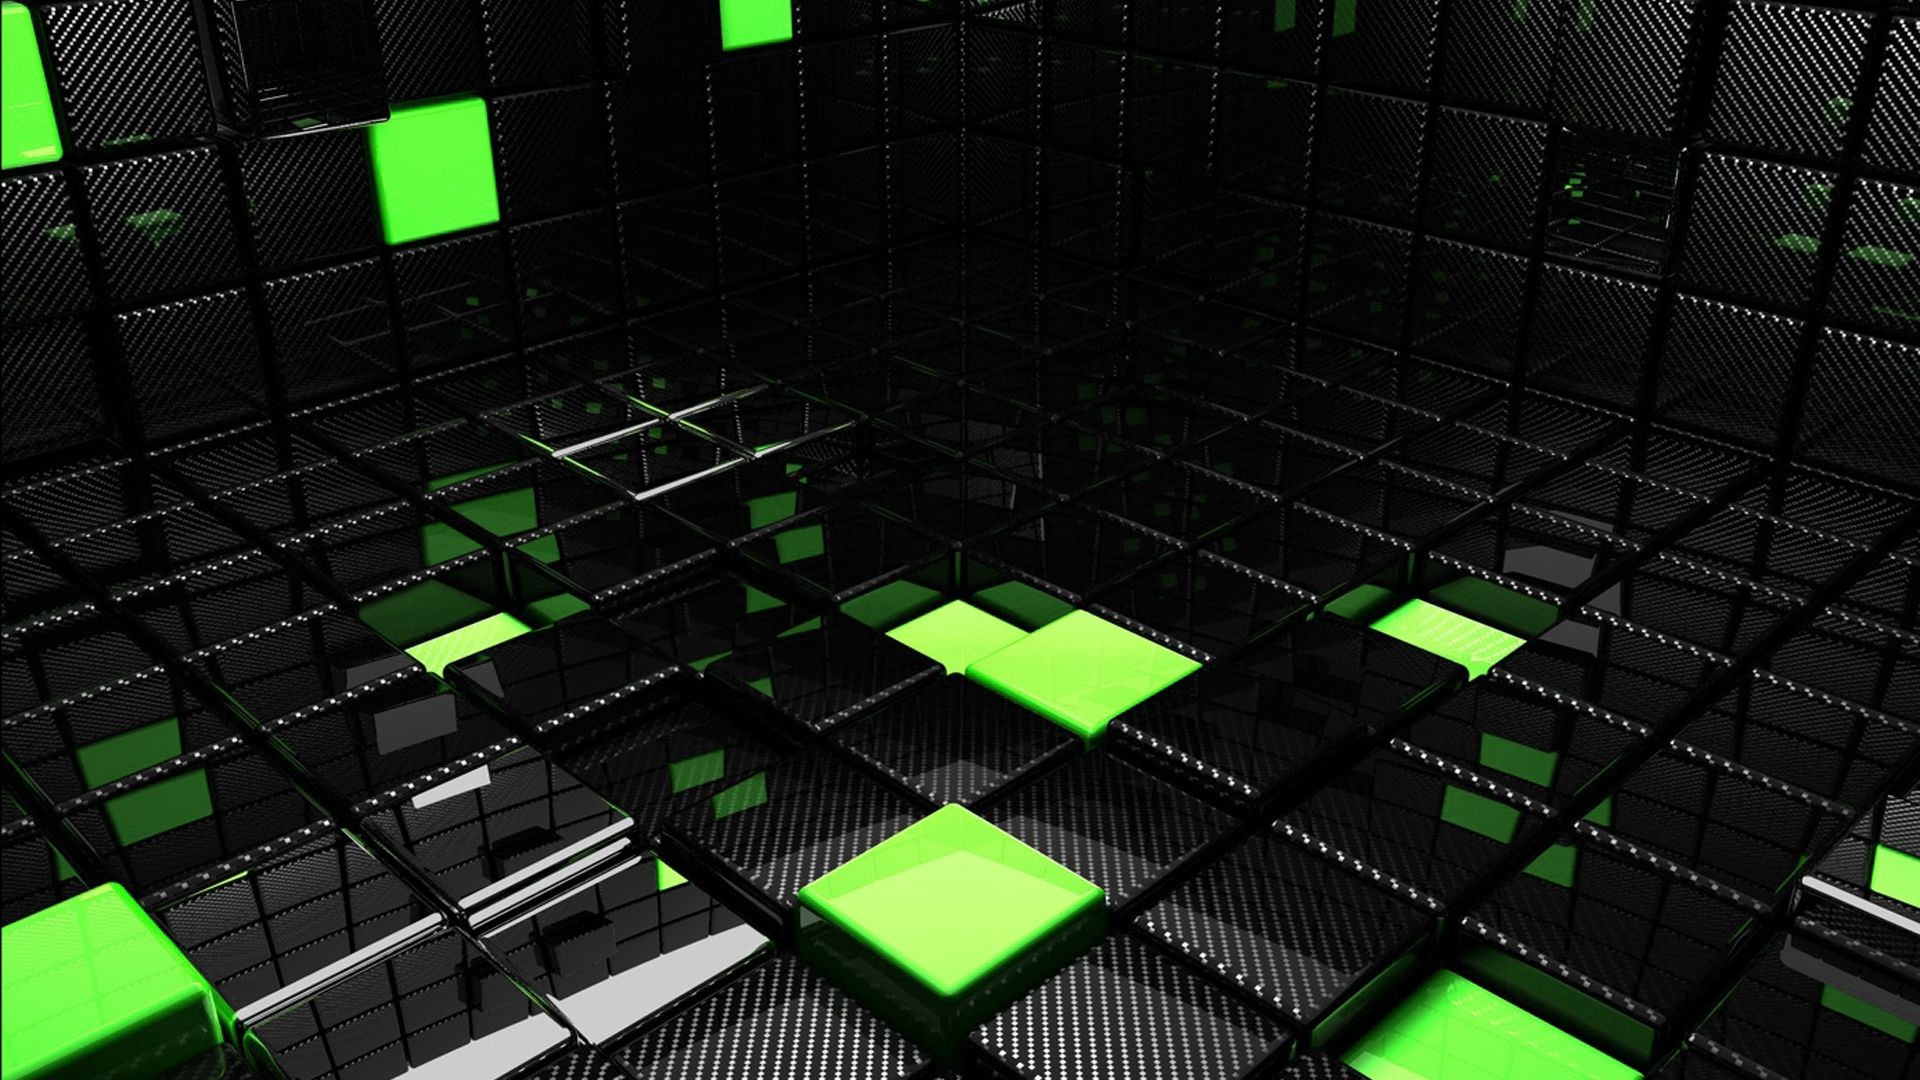 Download Wallpaper 1920x1080 Cube Square Green Black Space Full Hd 1080p Hd Background Abstrak Api Seni